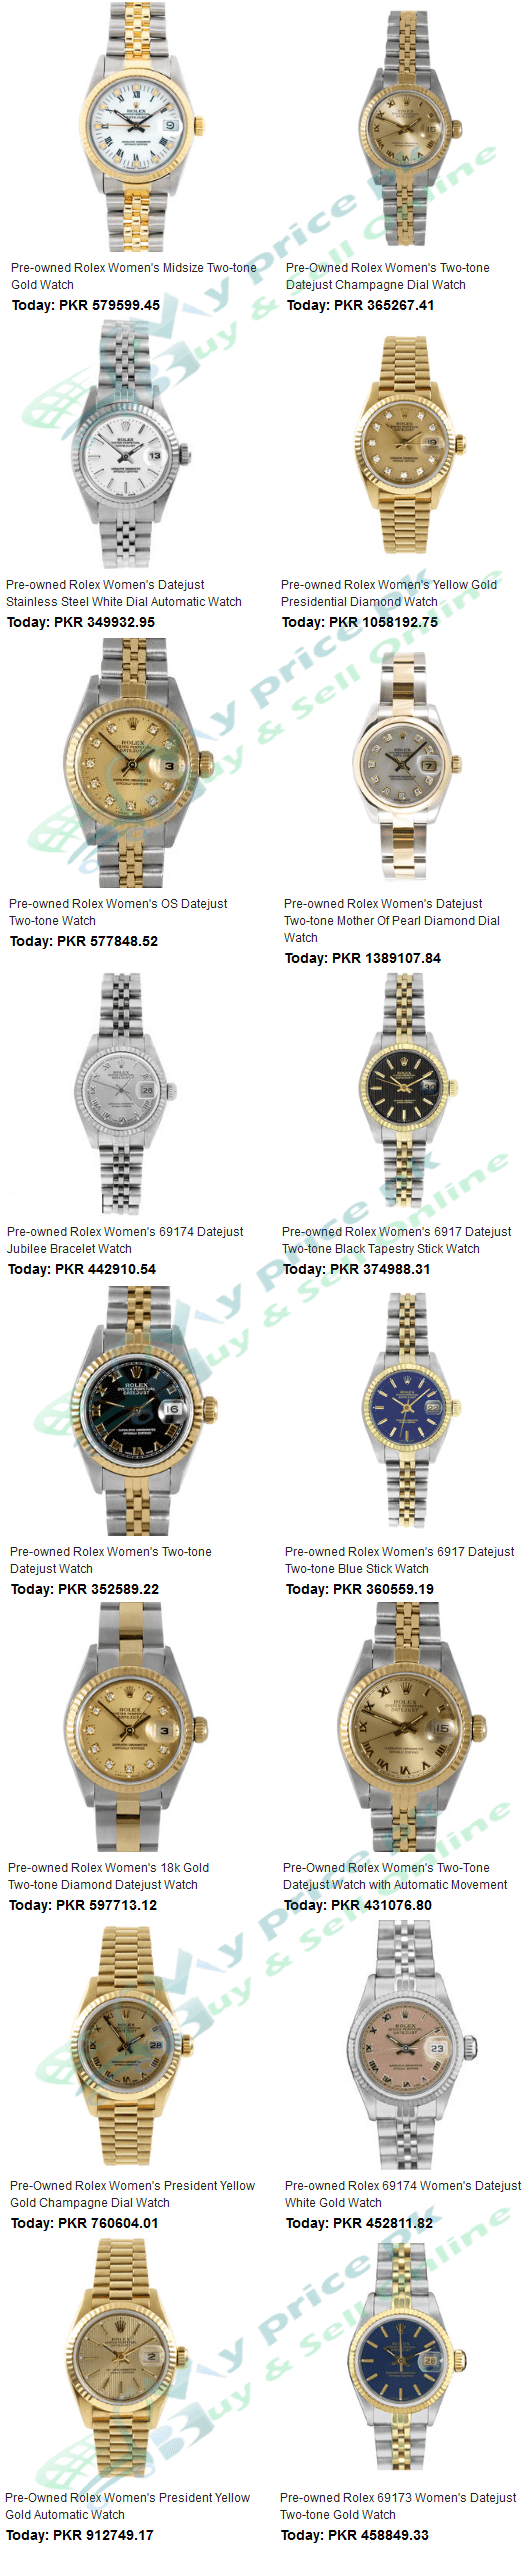 ROLEX Best Ladies/Female Watches Products Price in Pakistan with Specs Shape Images